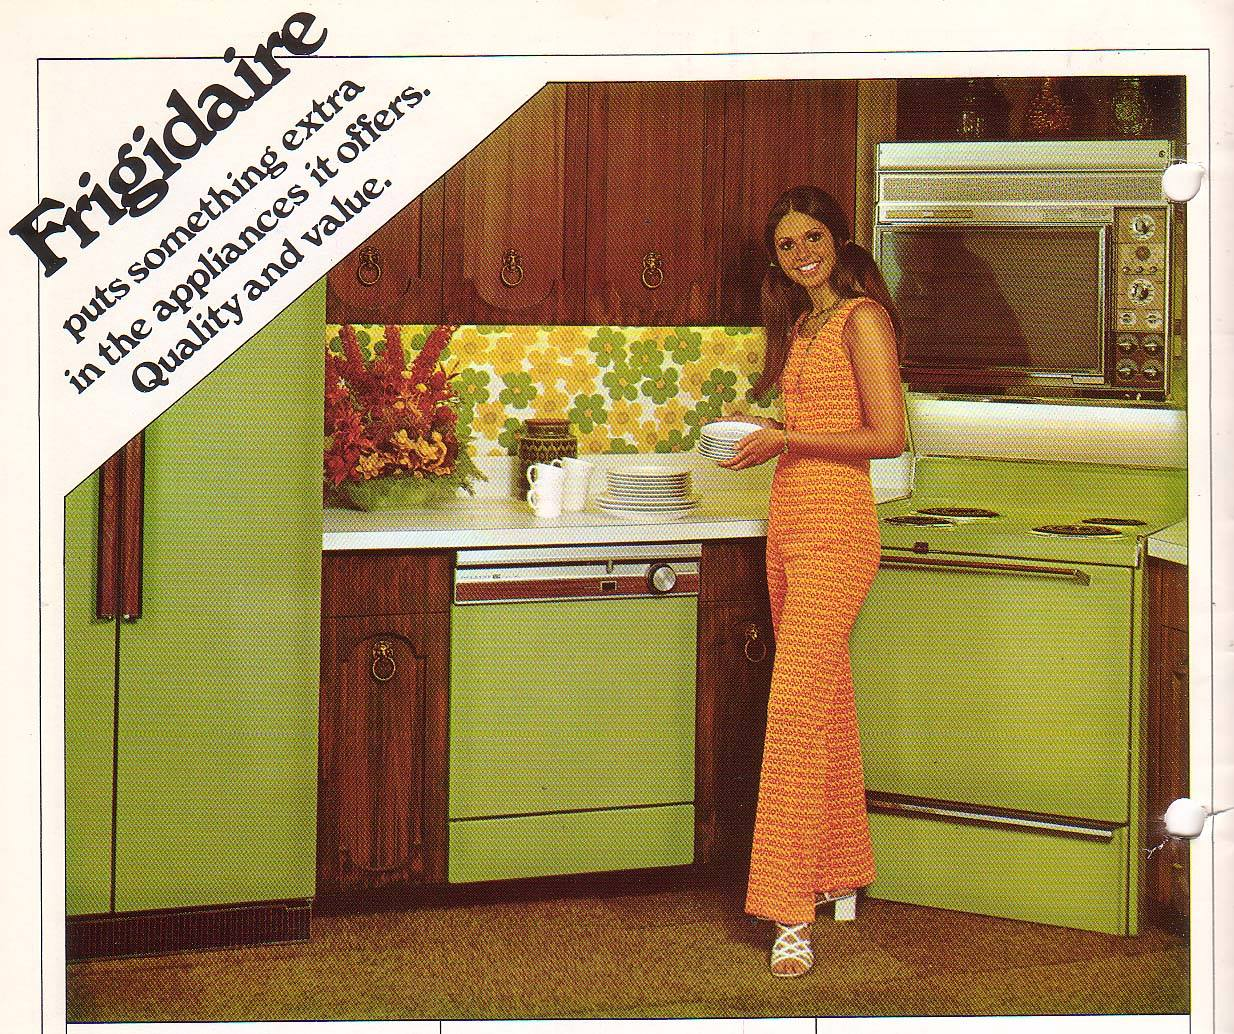 Whatever Happened To The Colorful Kitchen? - Go Retro!